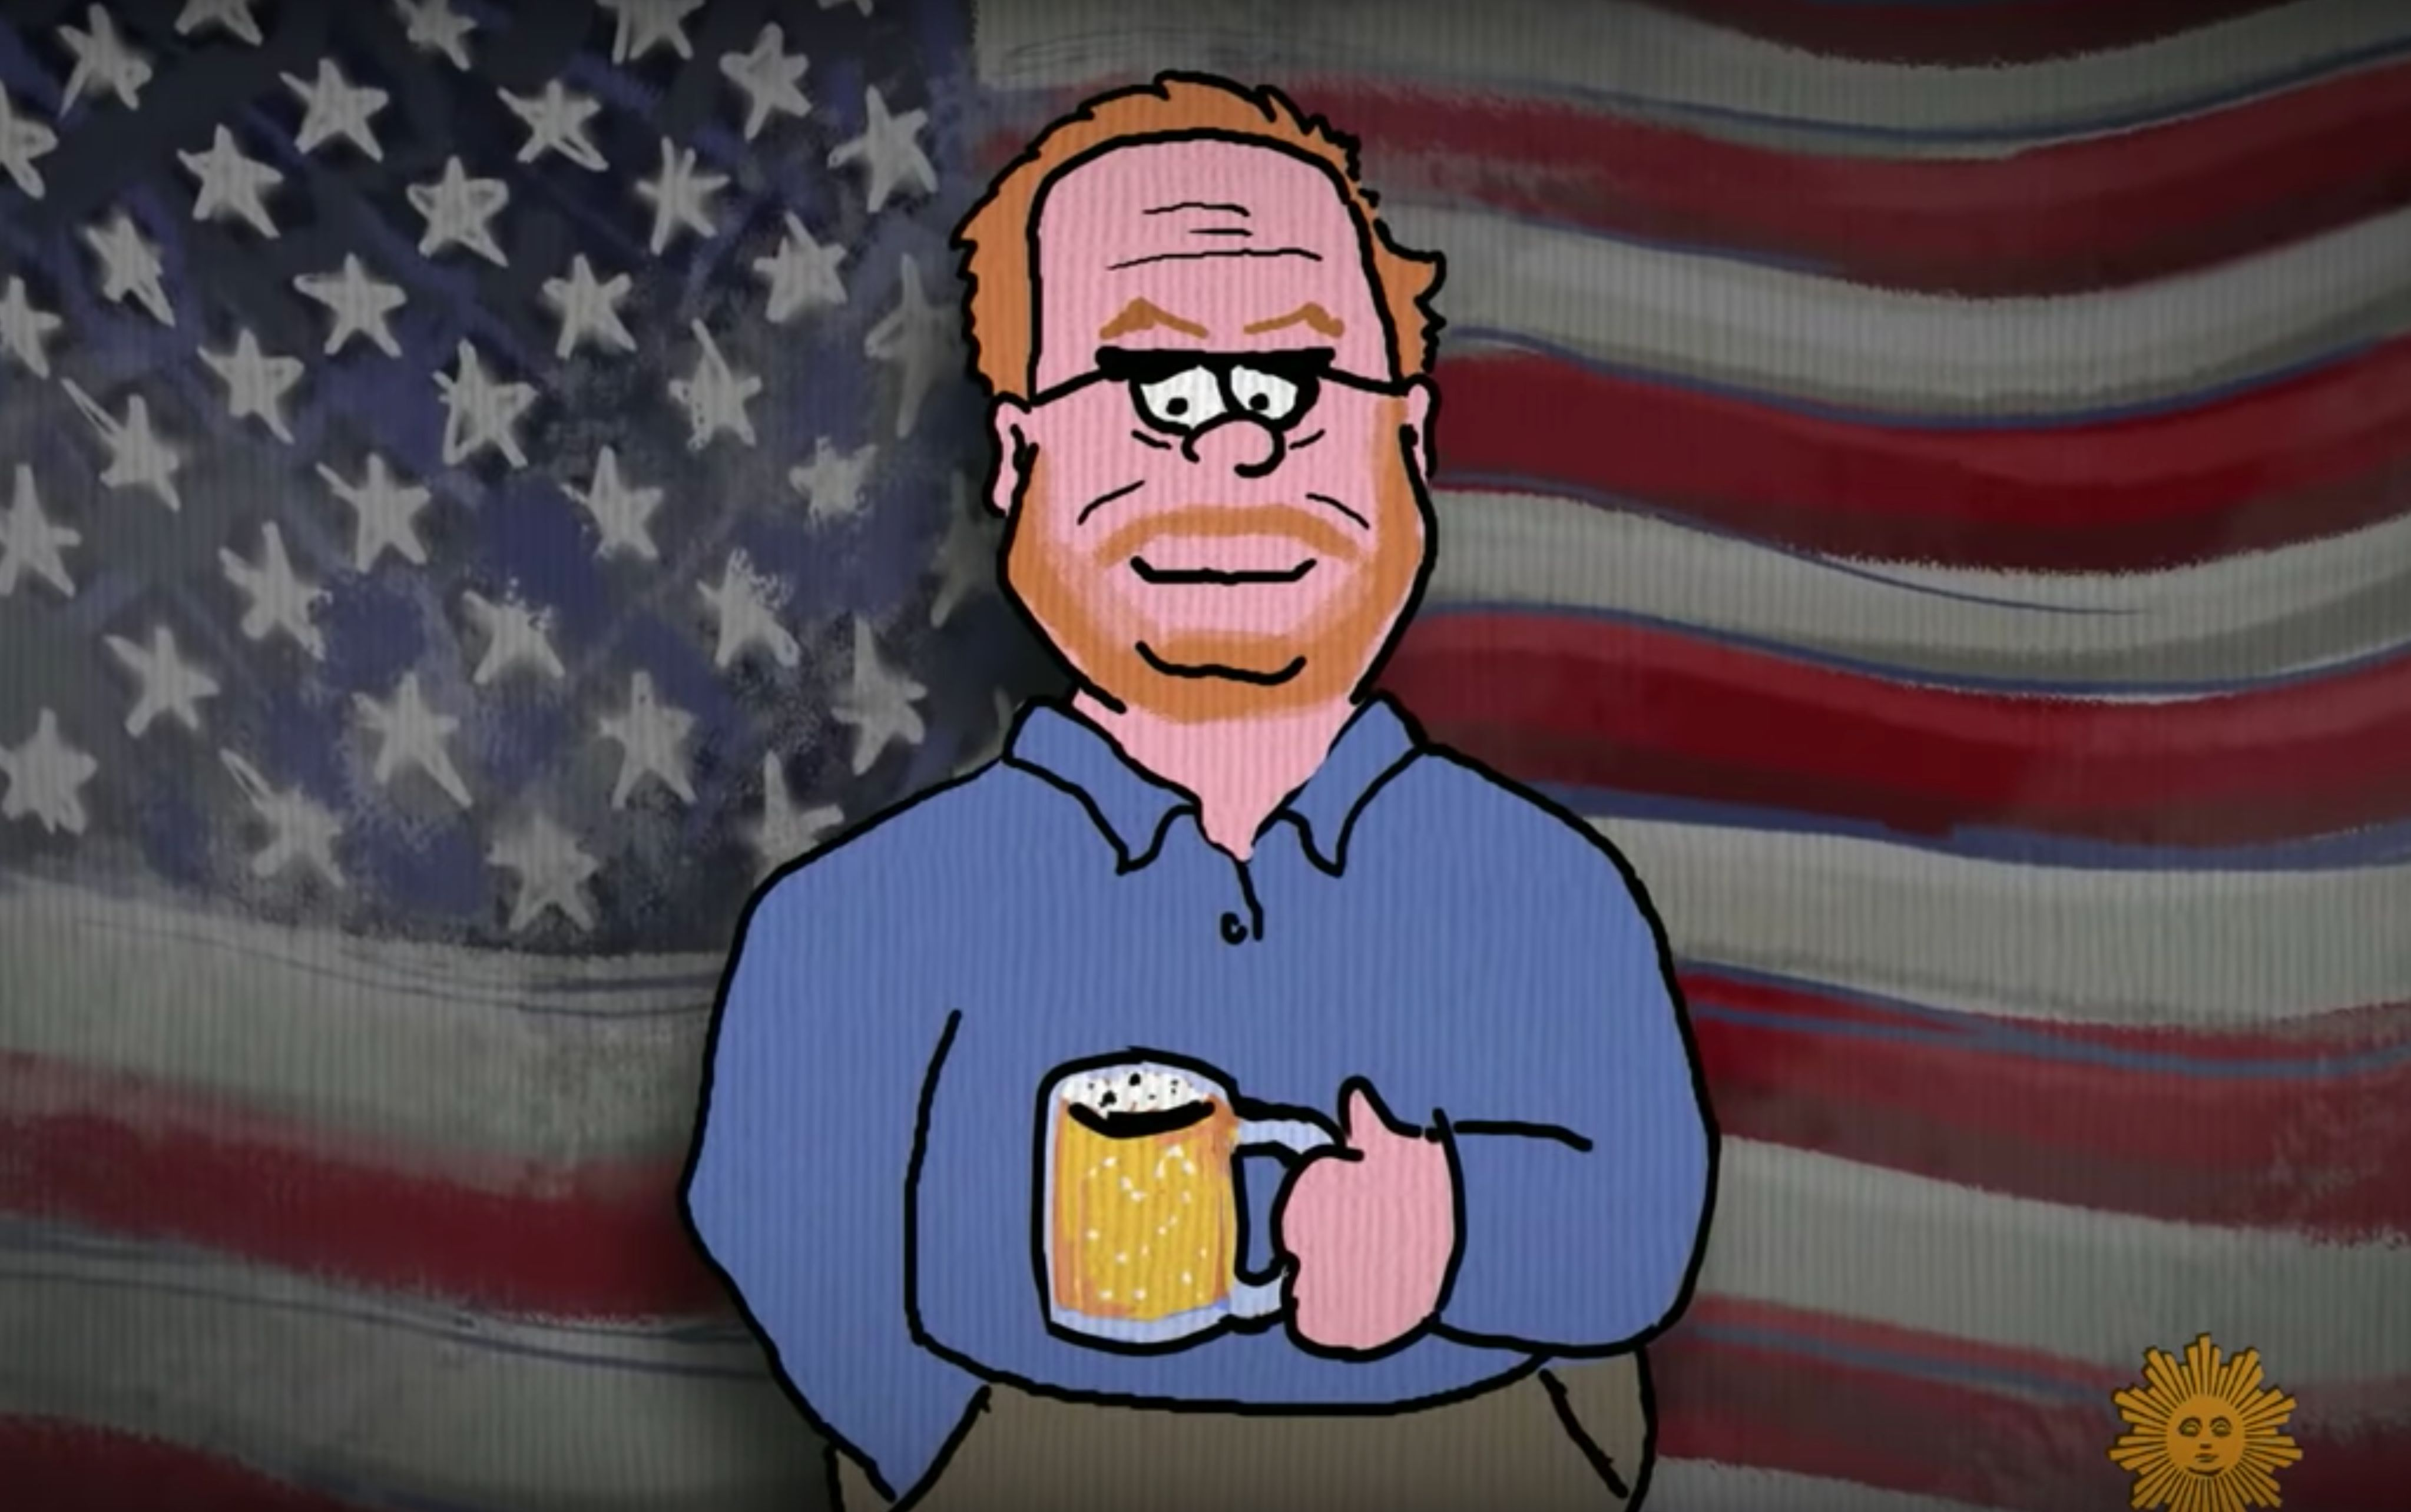 Jim Gaffigan misses beer-flavored beer